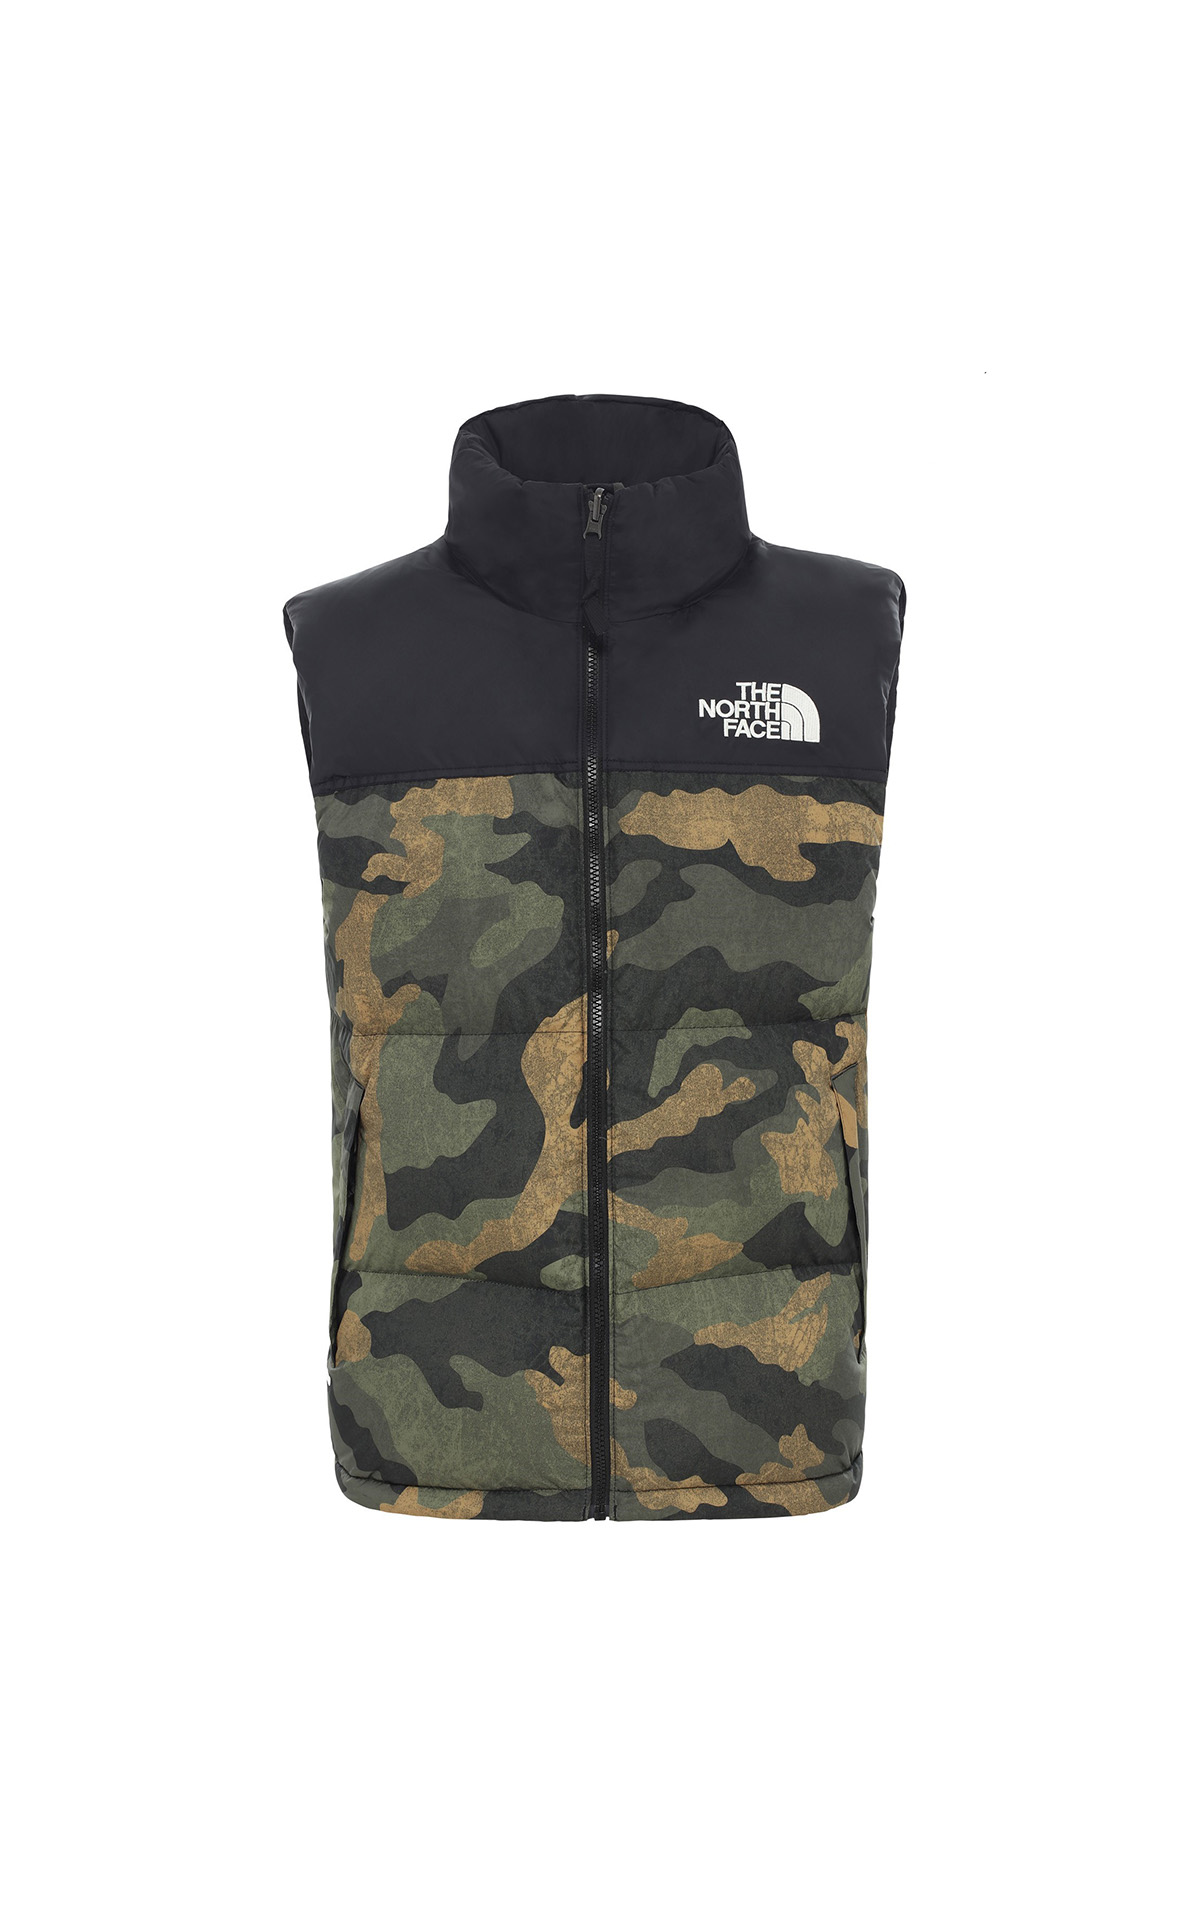 The North Face M 1996 ssnl nuptse vest from Bicester Village